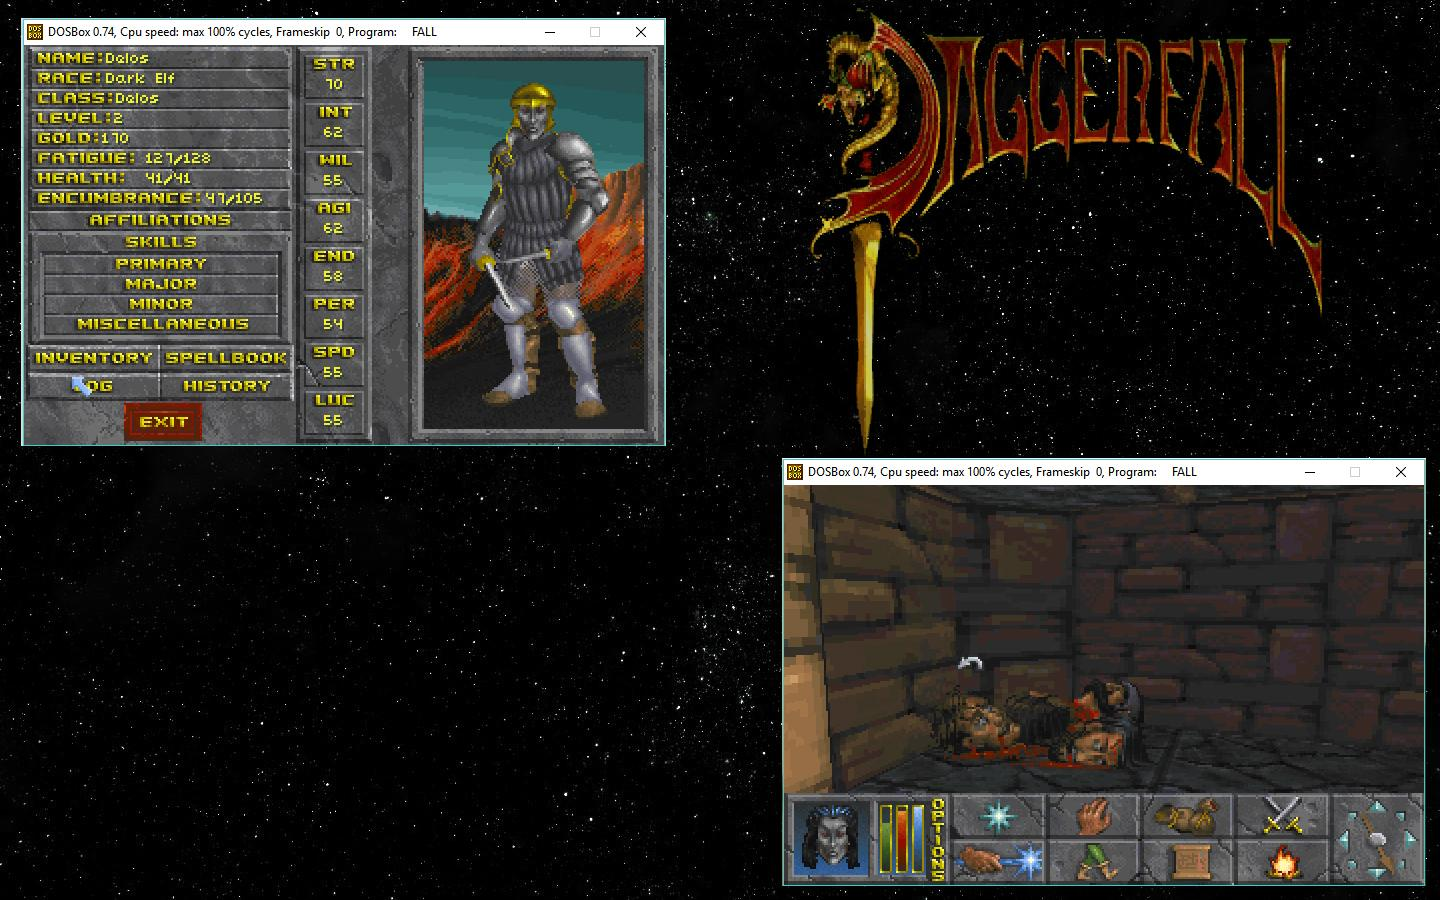 My Daggerfall gameplay screenshots